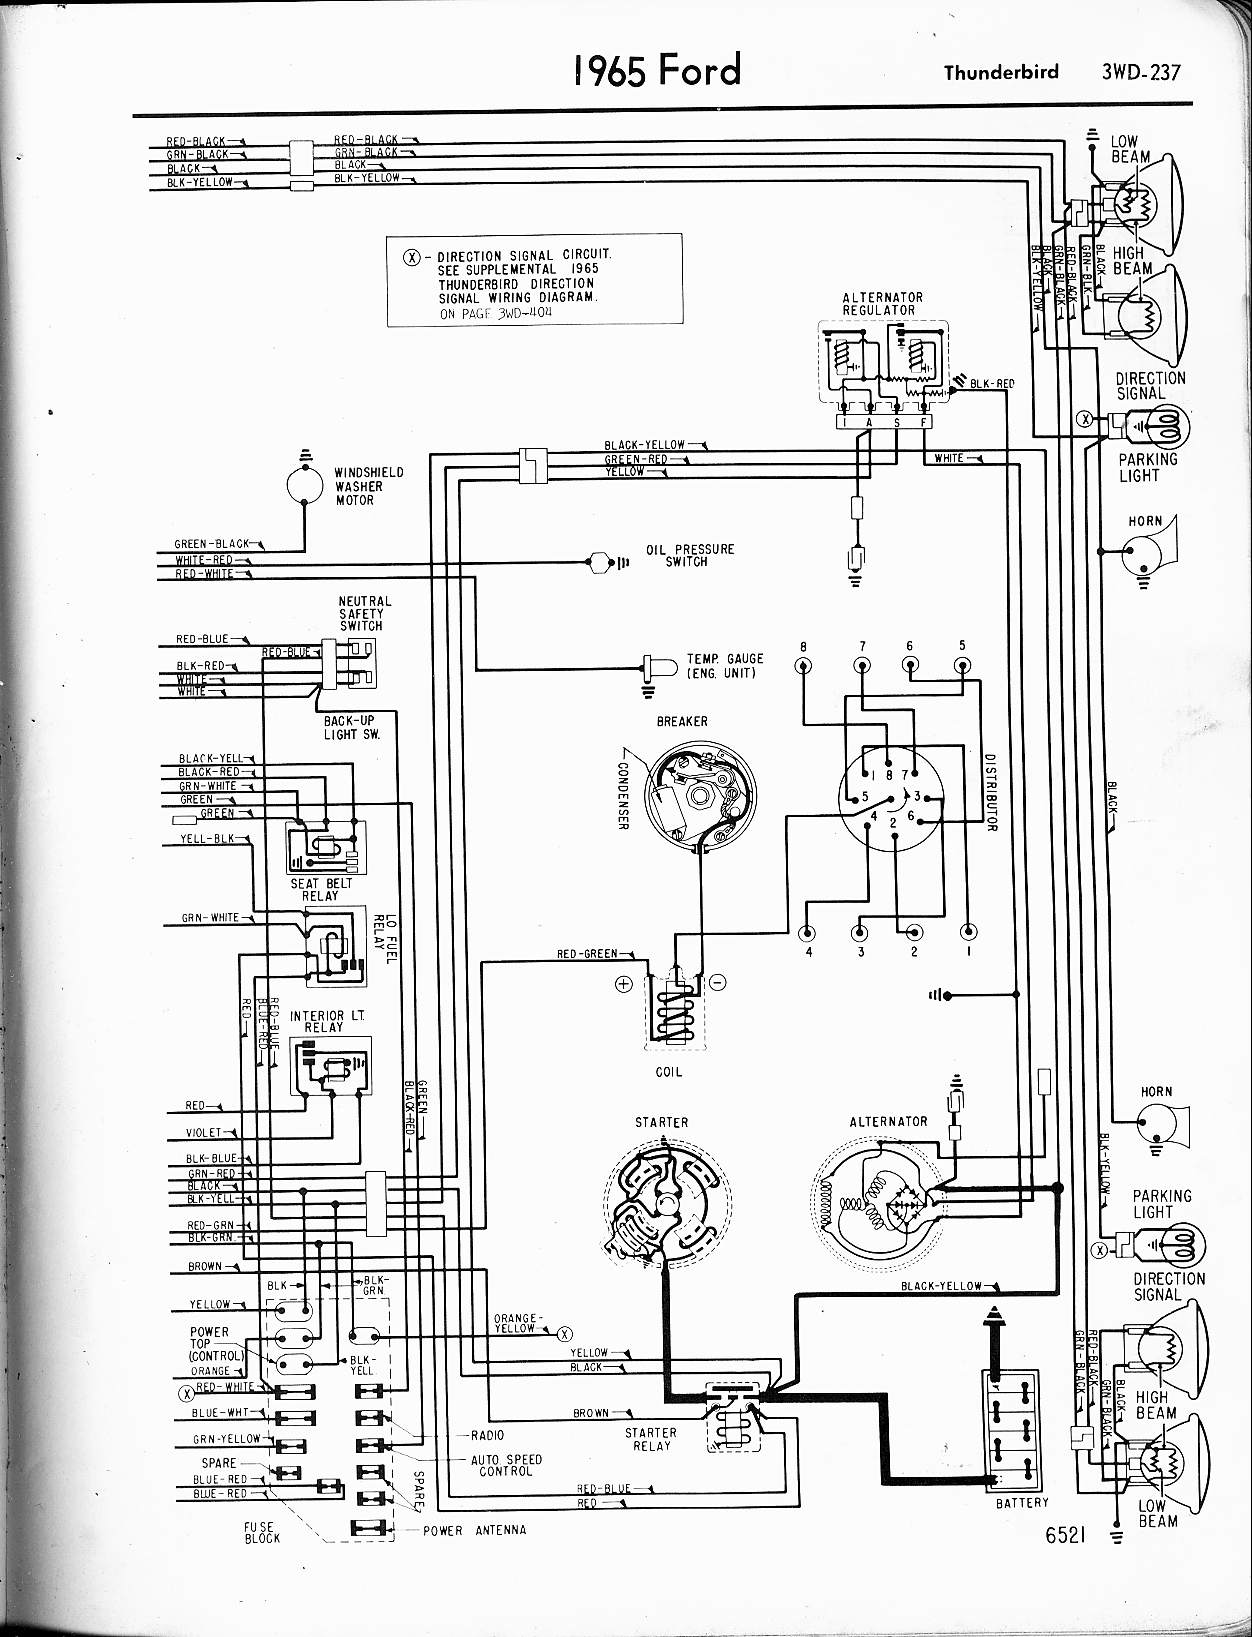 57 65 Ford Wiring Diagrams 1955 Thunderbird Wiring Diagram 1956 Ford Wiring  Diagram